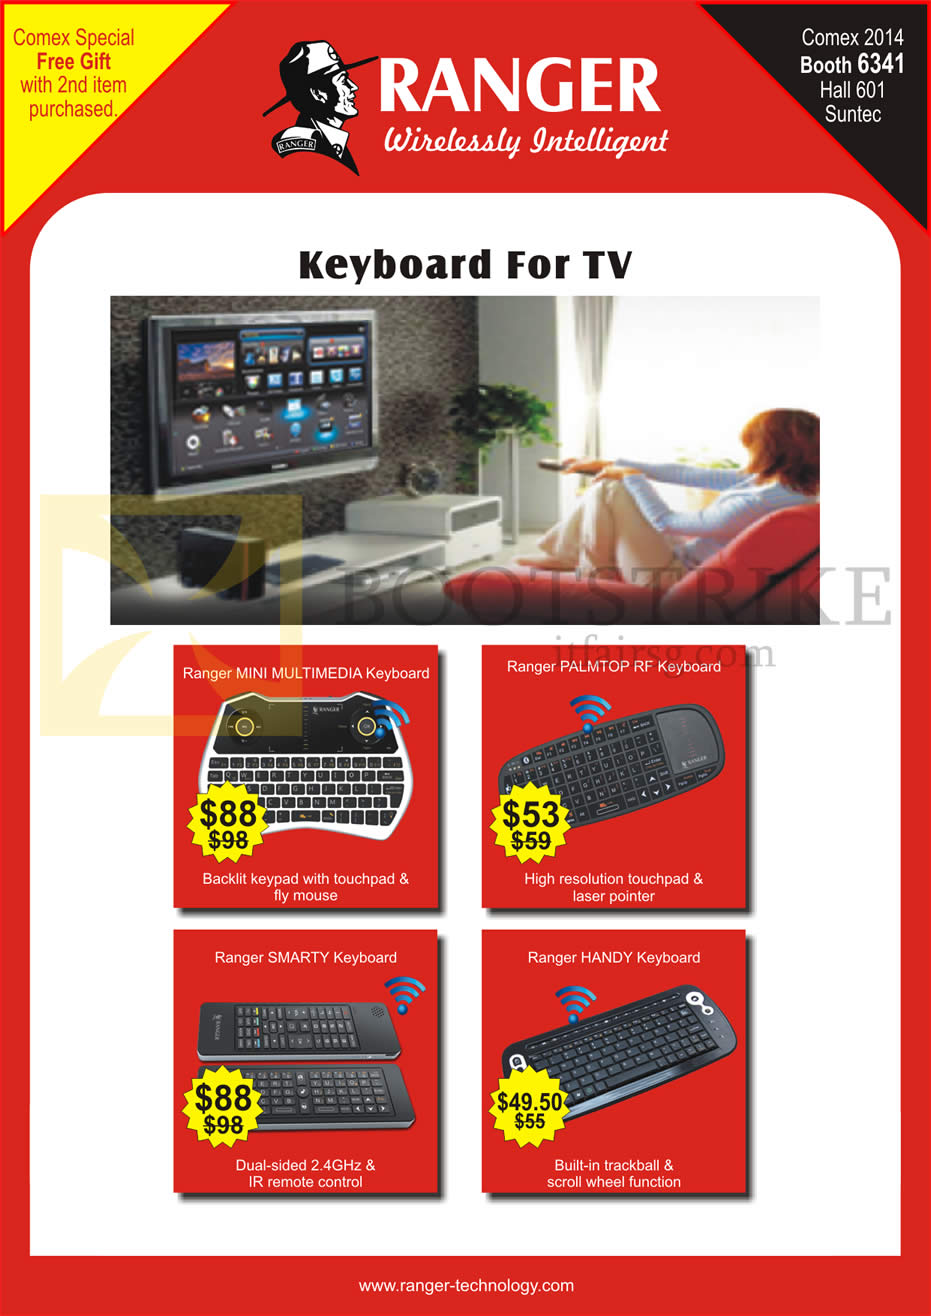 COMEX 2014 price list image brochure of Ranger Keyboards Mini, Palmtop RF, Smarty, Handy